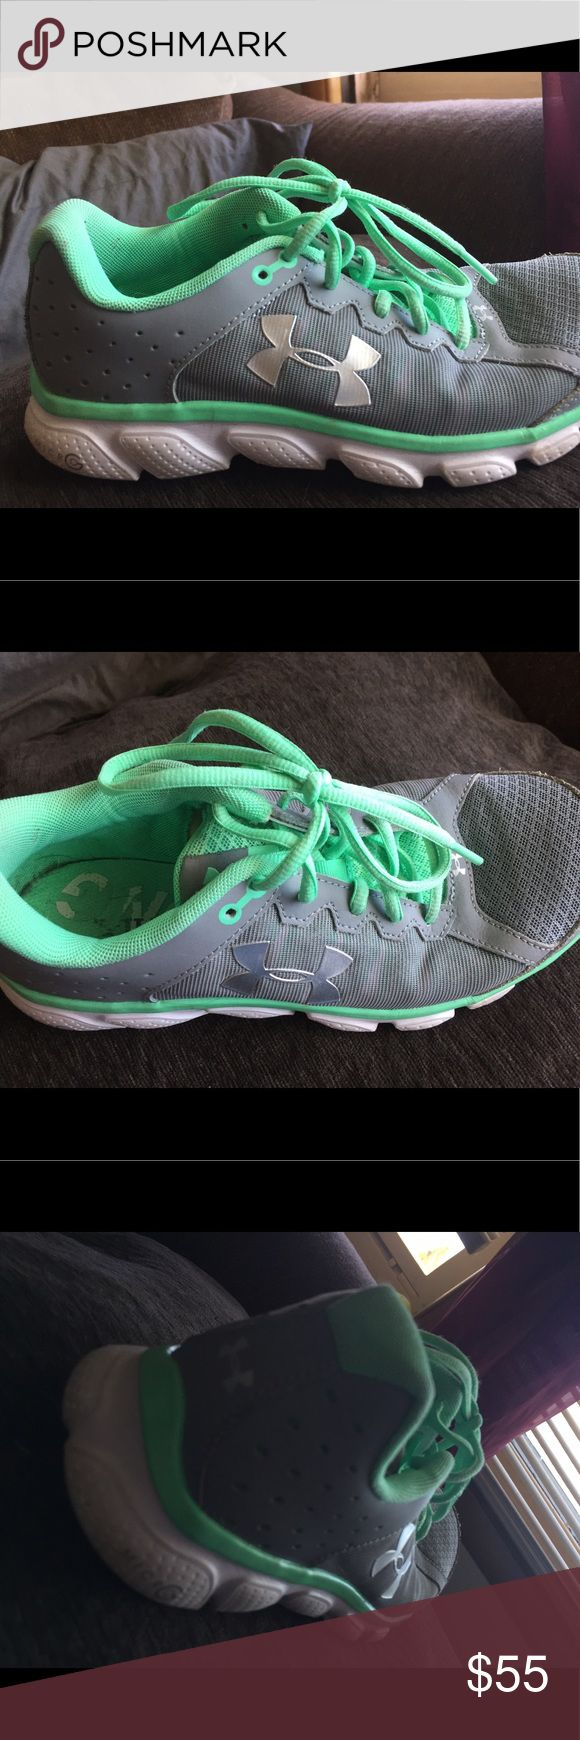 Under Armour Running shoes This mint green and gray under armour shoes are soft and comfortable. worn once and in great condition! Under Armour Shoes Athletic Shoes